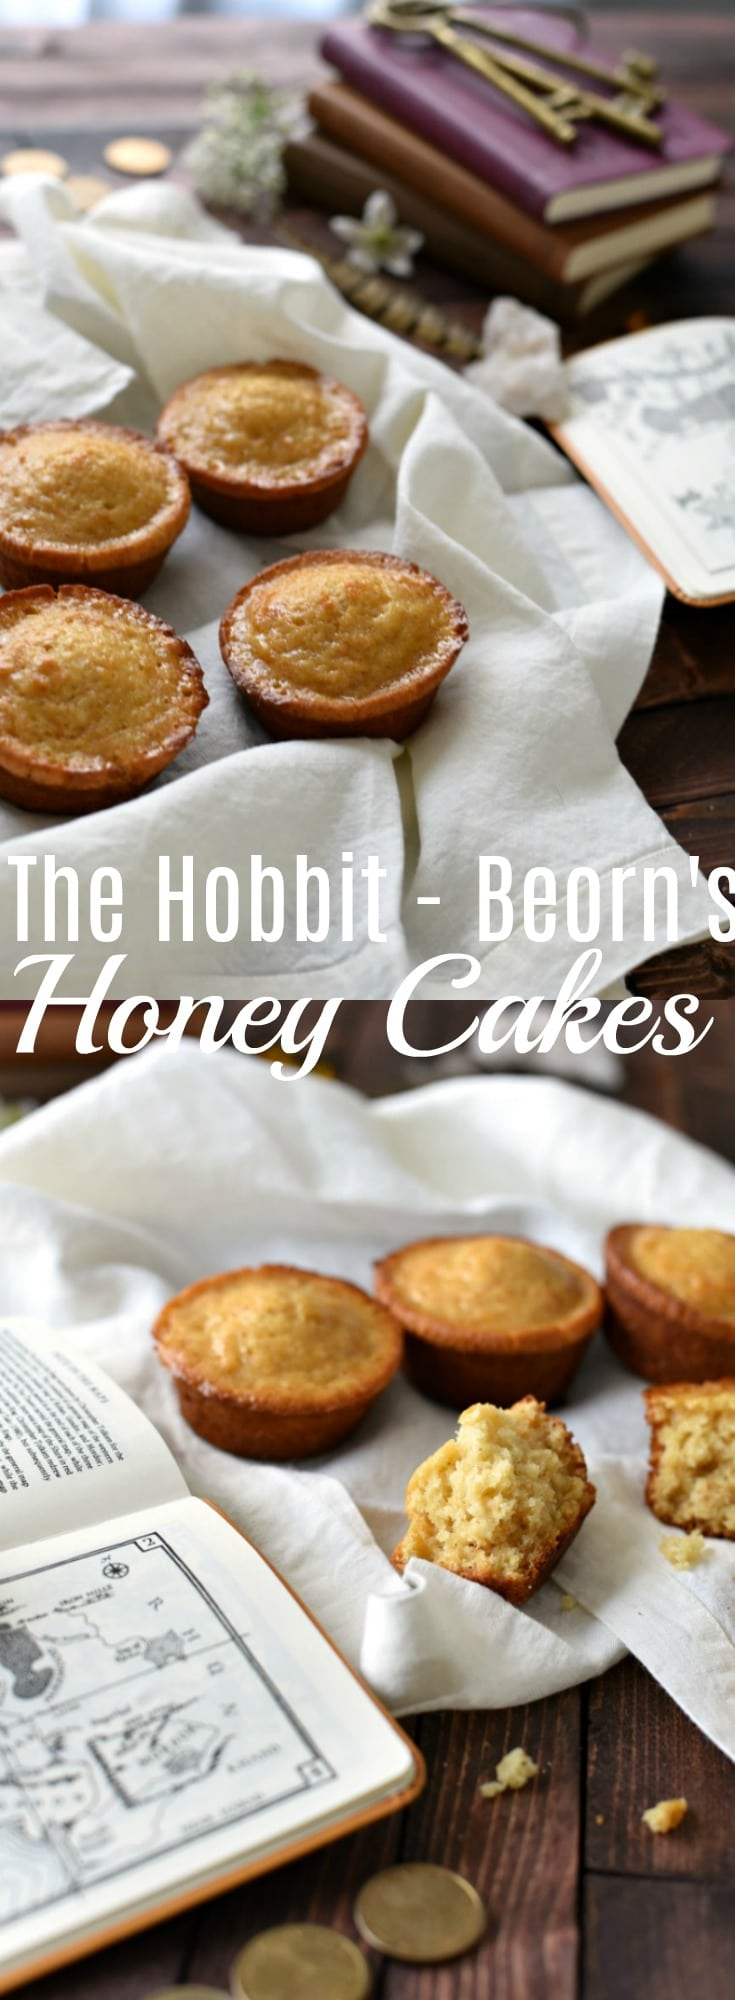 These twice baked honey cakes are slightly crispy on the outside, but dense and moist on the inside, plus full of honey flavor. This Hobbit inspired cake recipe is a perfect treat for breakfast, tea, or snack! Lord of the Rings Recipe, Hobbit Inspired Recipe, Beorn's Honey Cake Recipe,